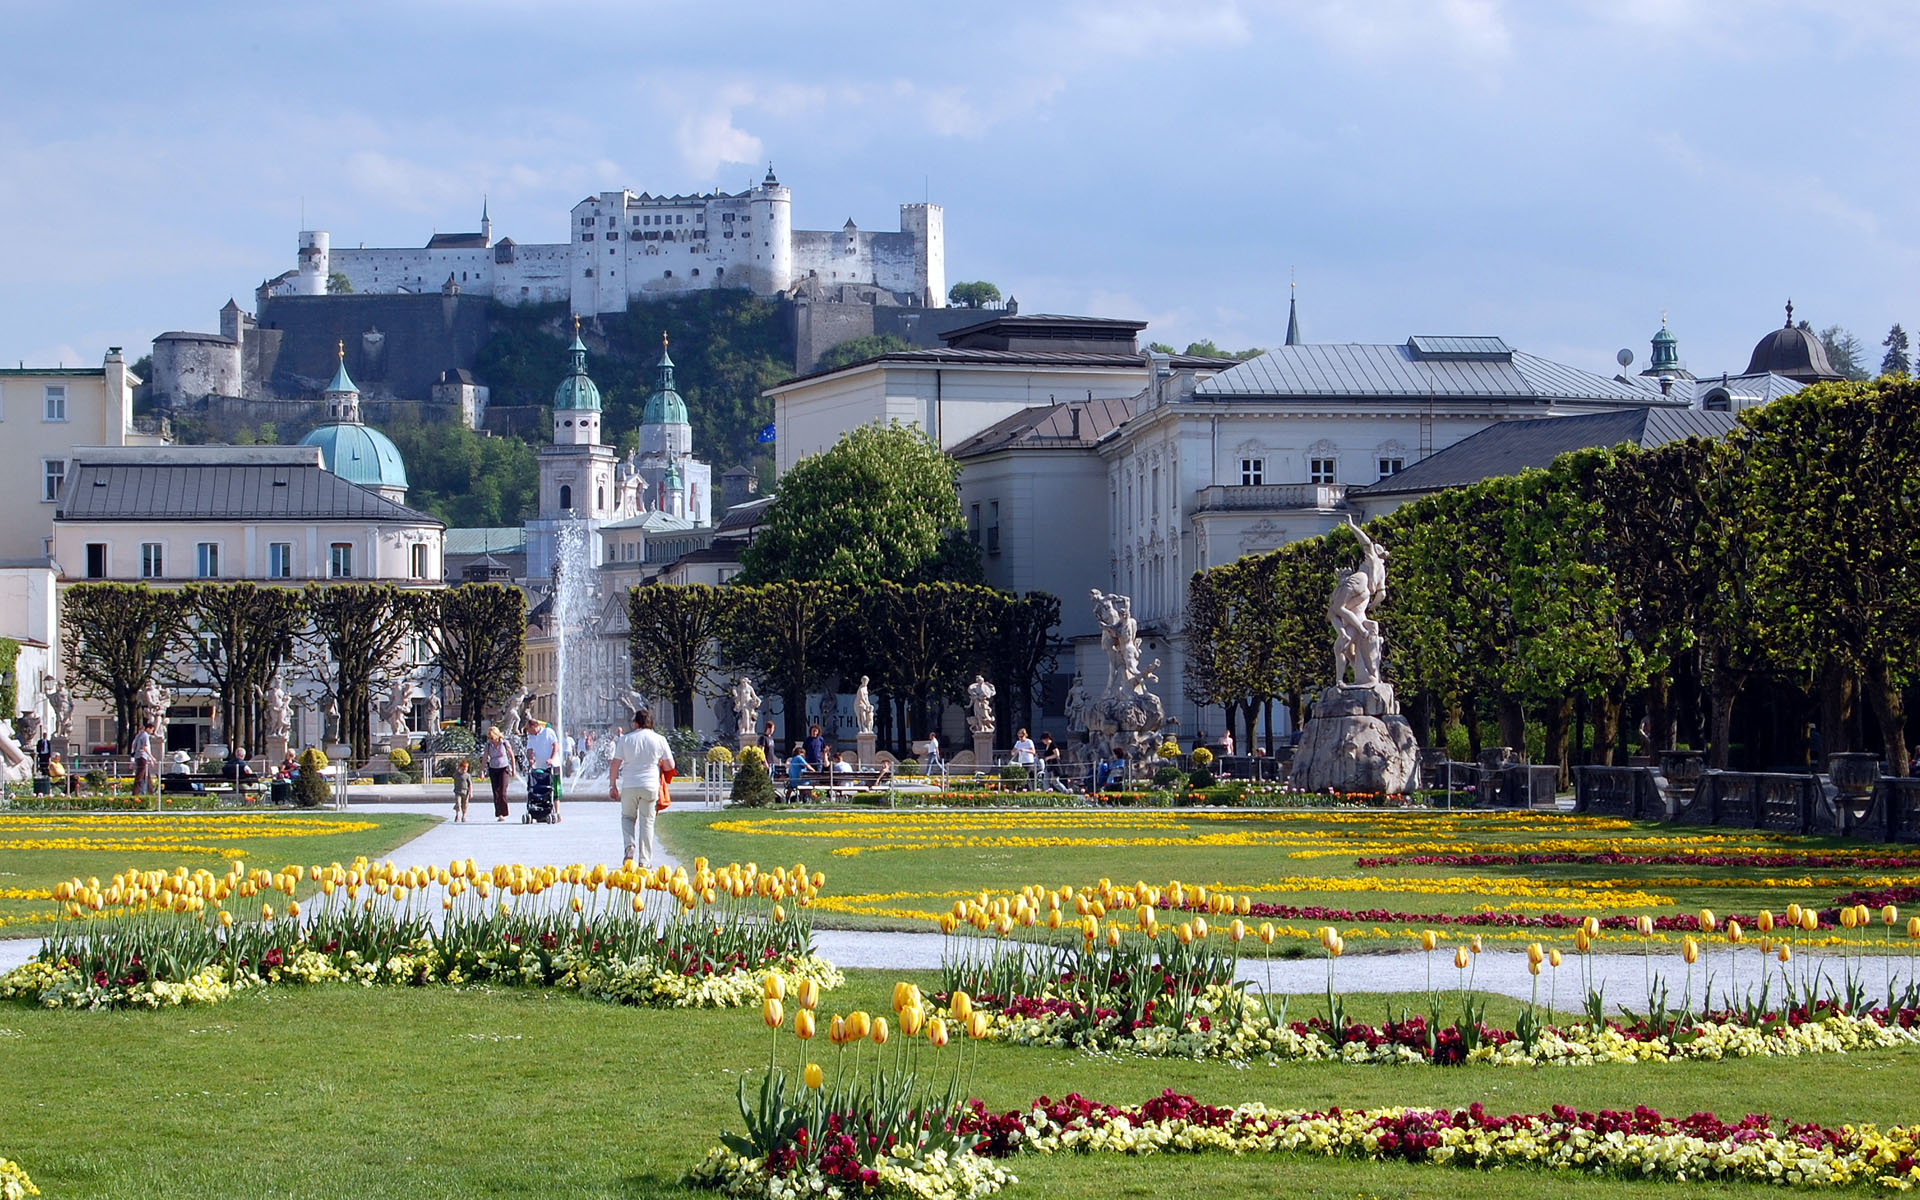 Download Salzburg Austria HotelRoomSearchNet [1920x1200] 49 1920x1200